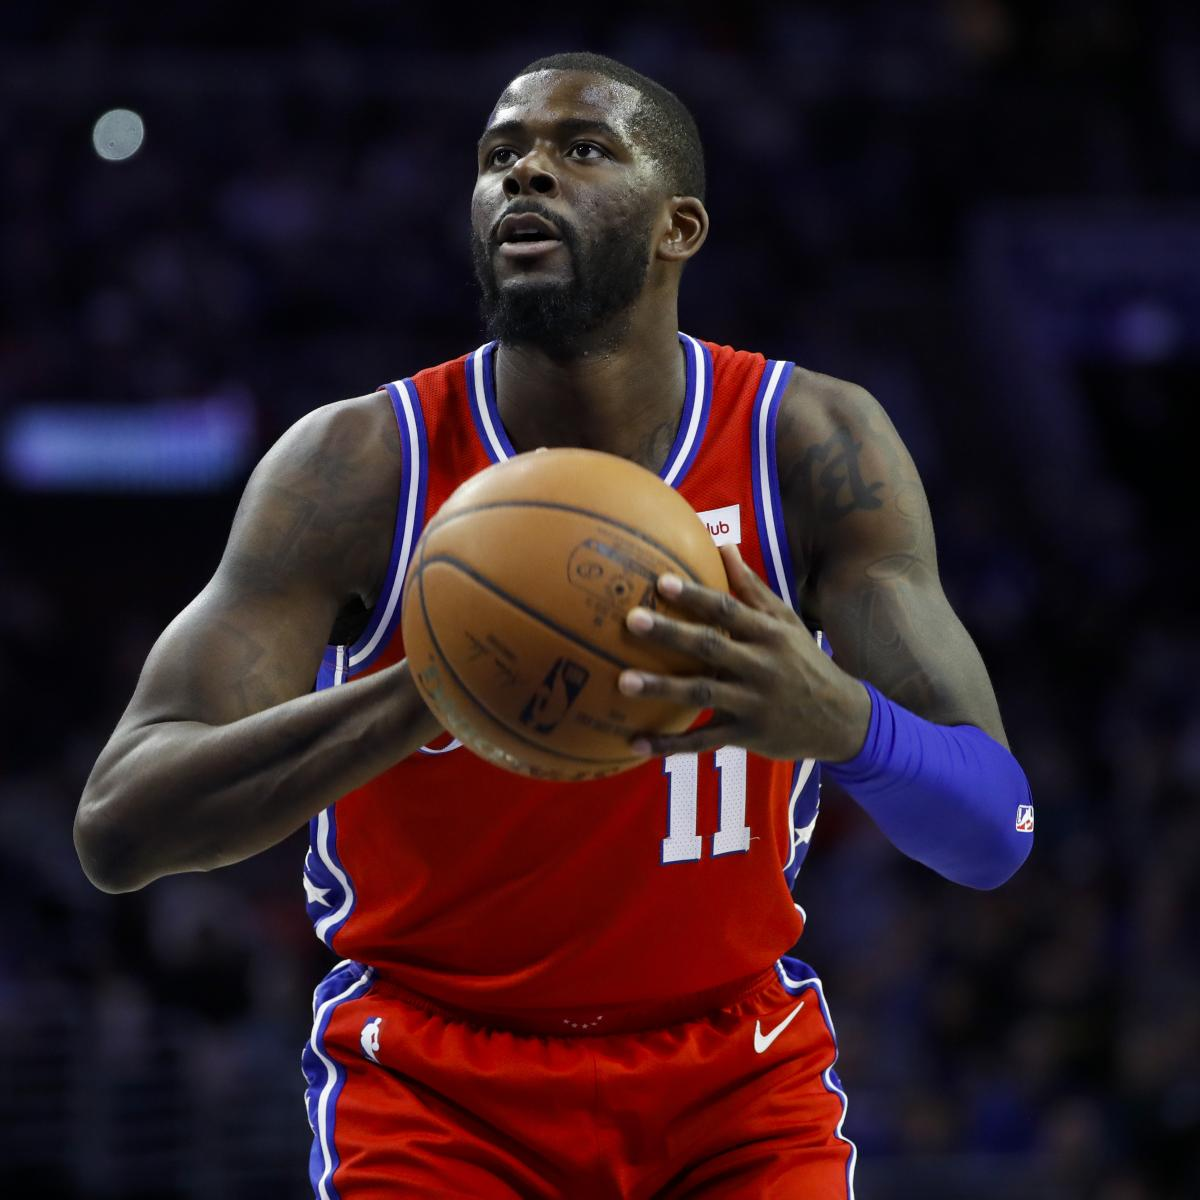 NBA Rumors: 76ers' James Ennis Cleared for Game 2 vs. Nets After Quad Injury